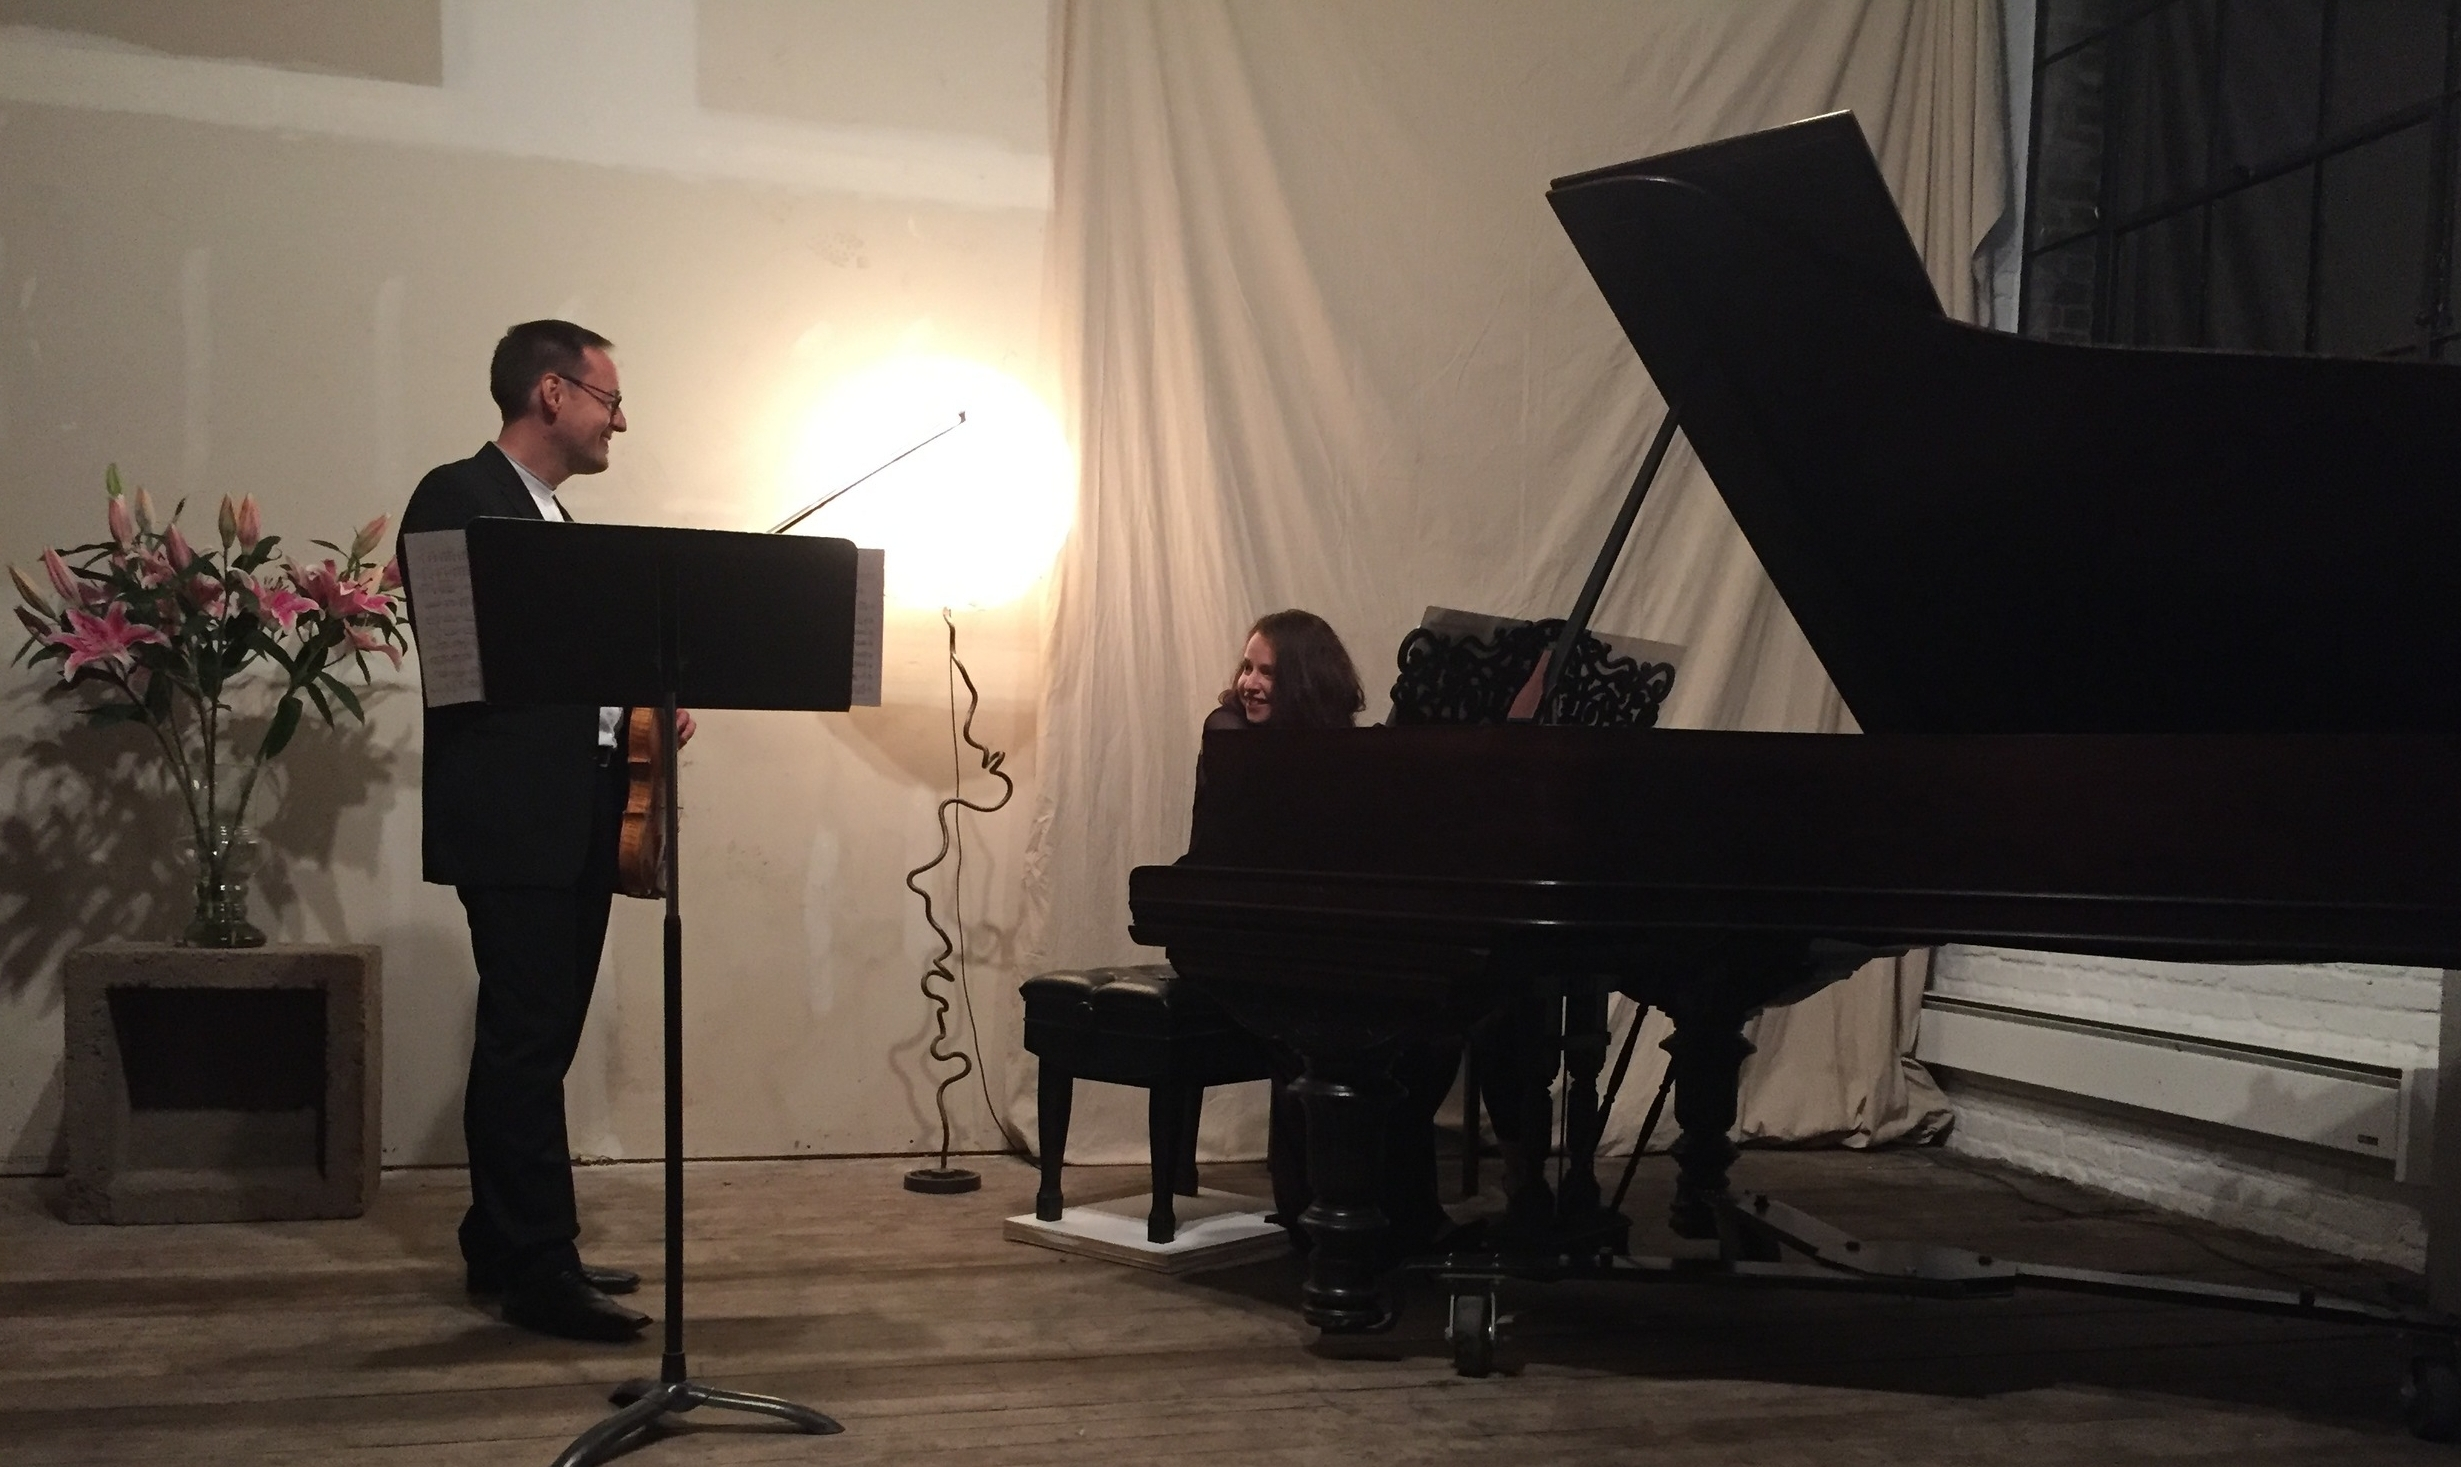 Before the Queen of the Hudson Music Series recital, with Tobias Steymans.